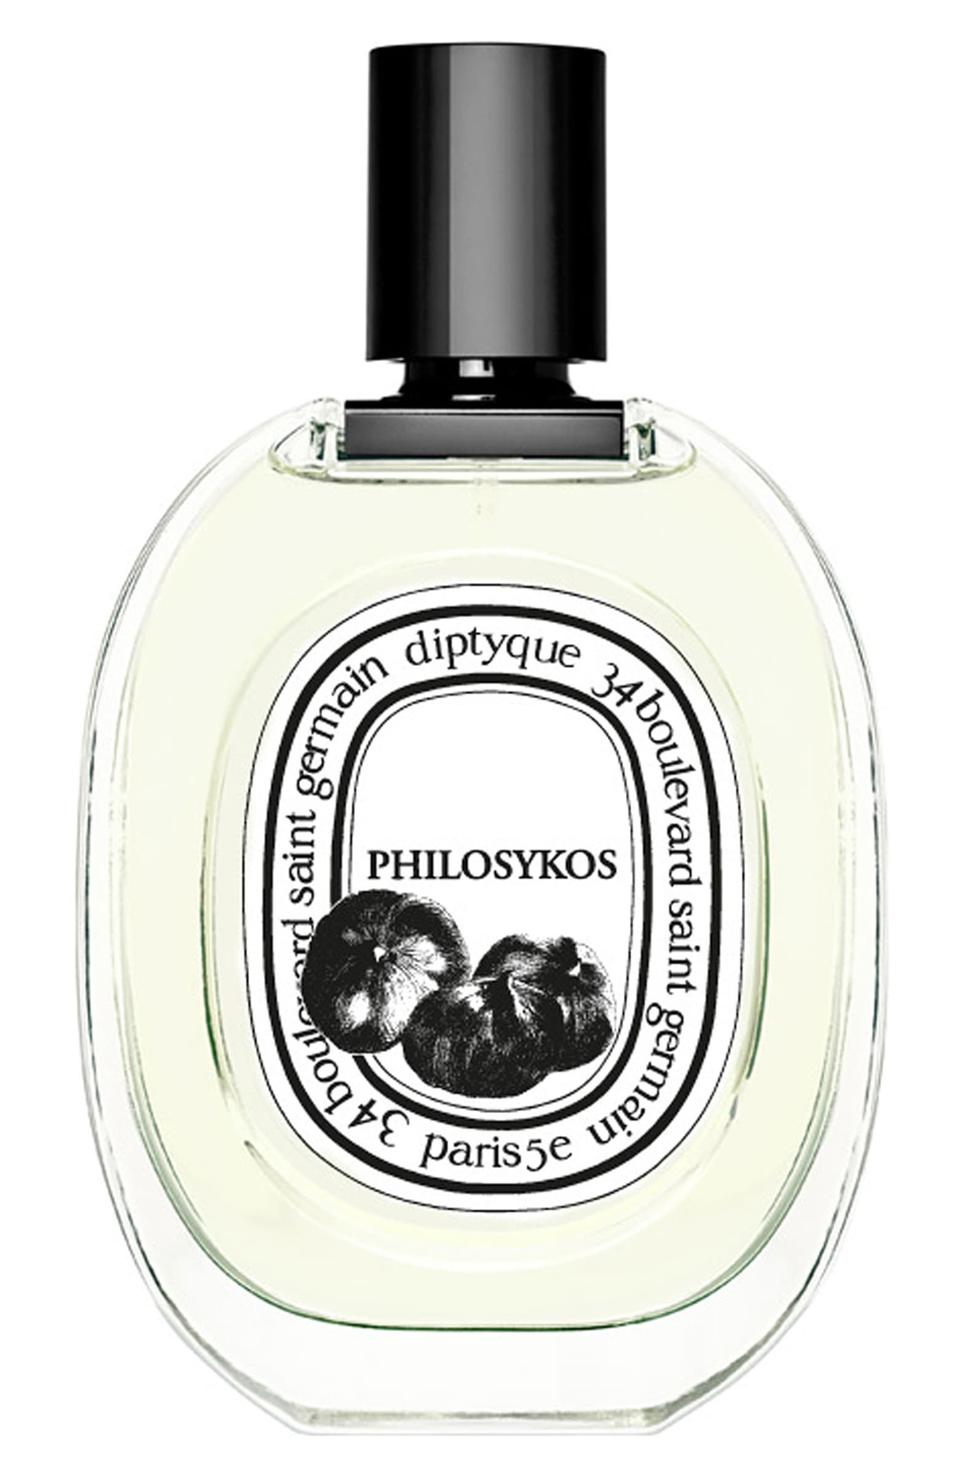 The Best Men's Colognes For Gifting